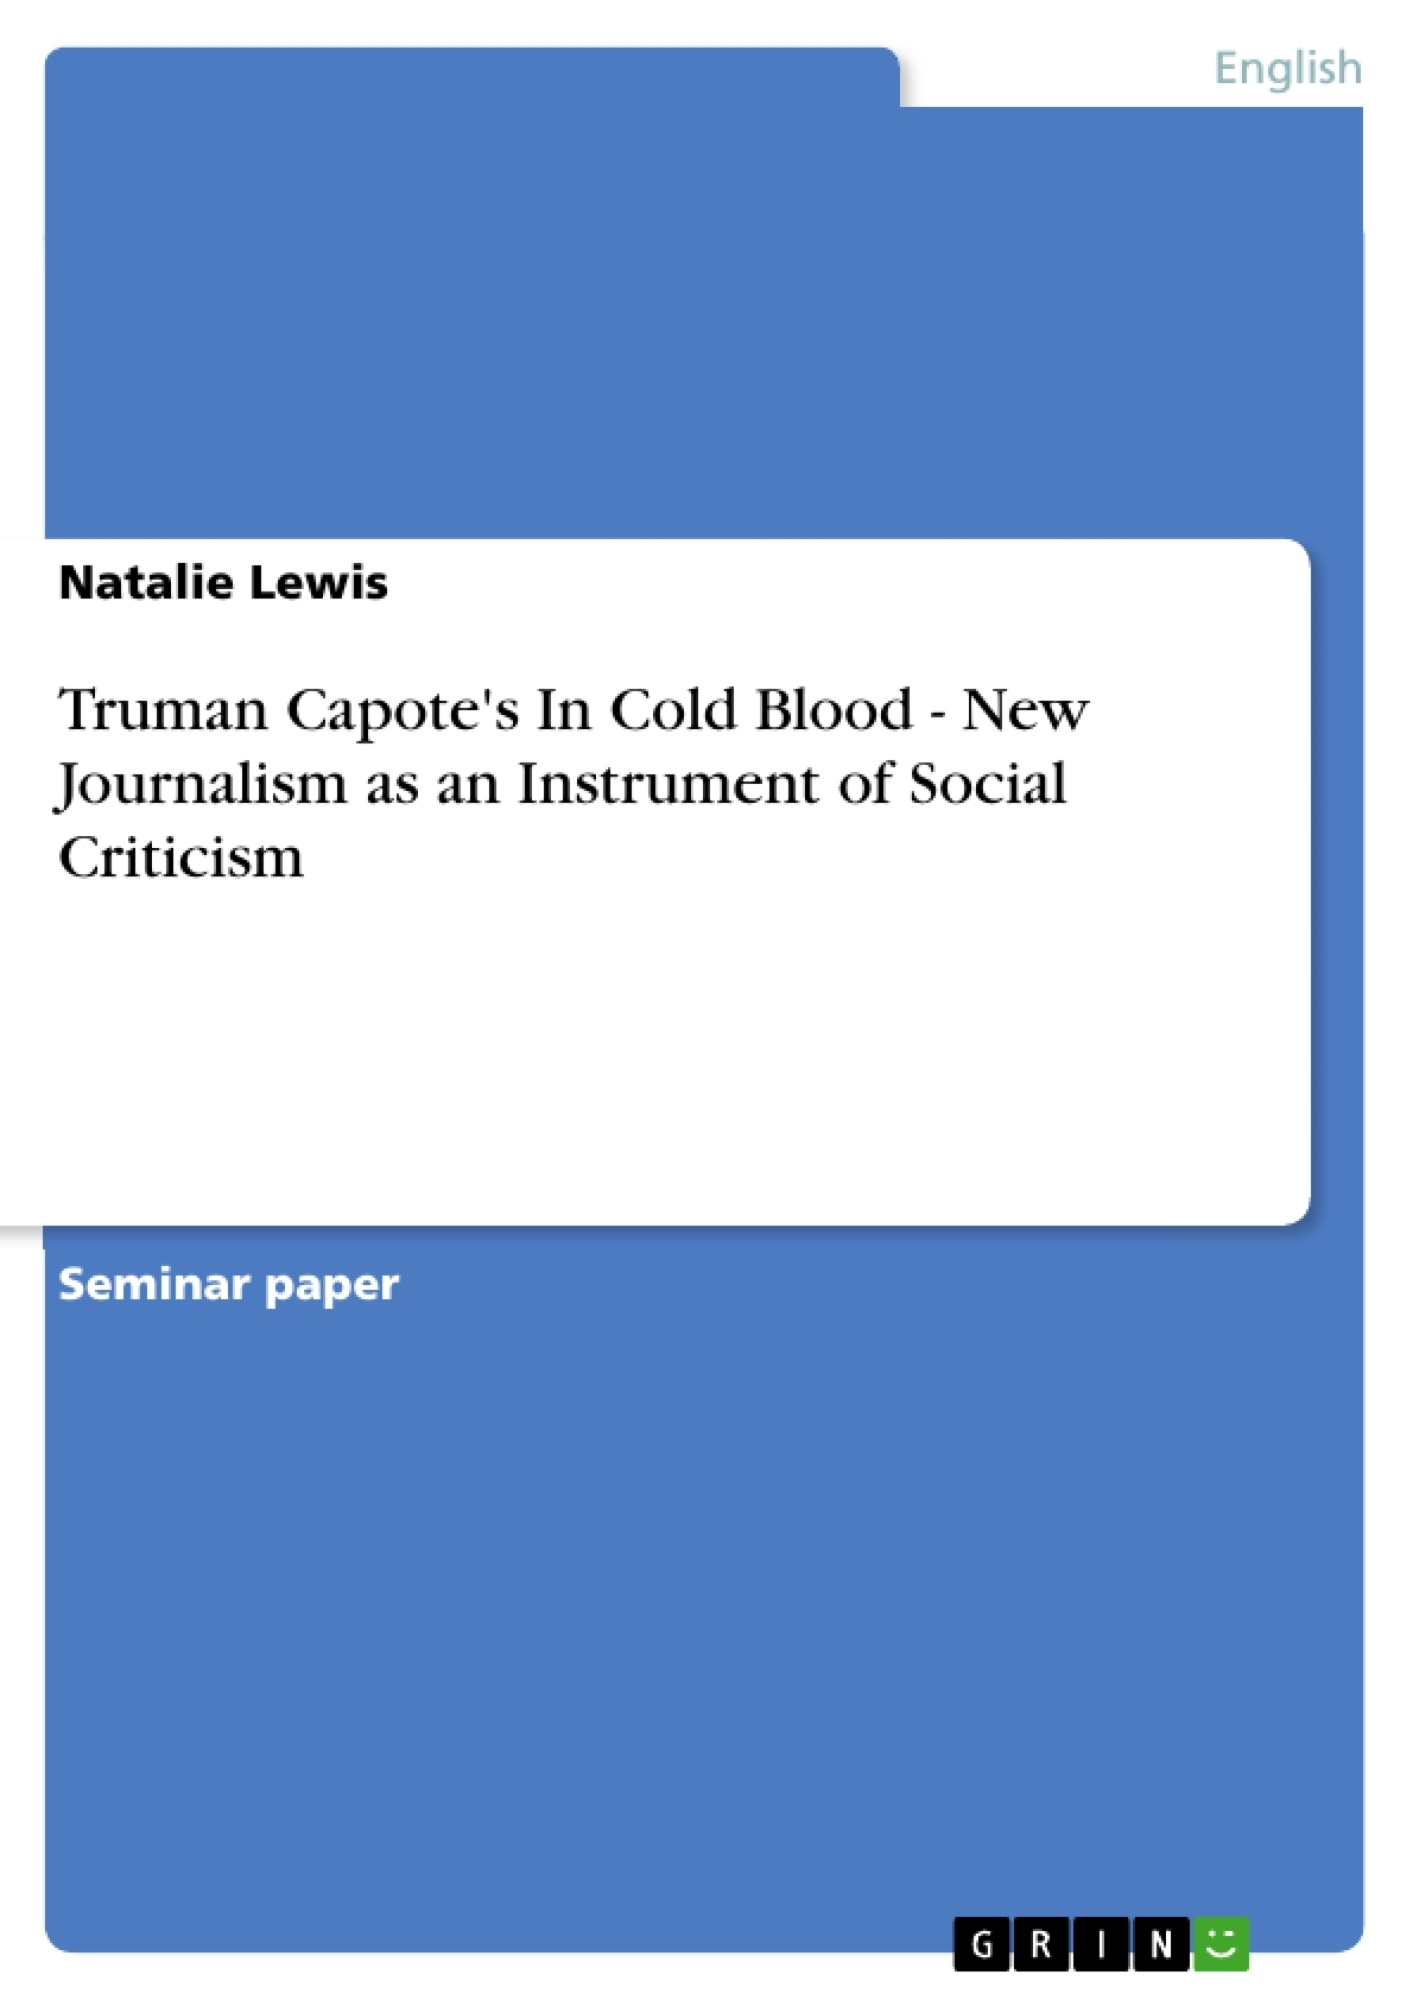 Title: Truman Capote's In Cold Blood - New Journalism as an Instrument of Social Criticism